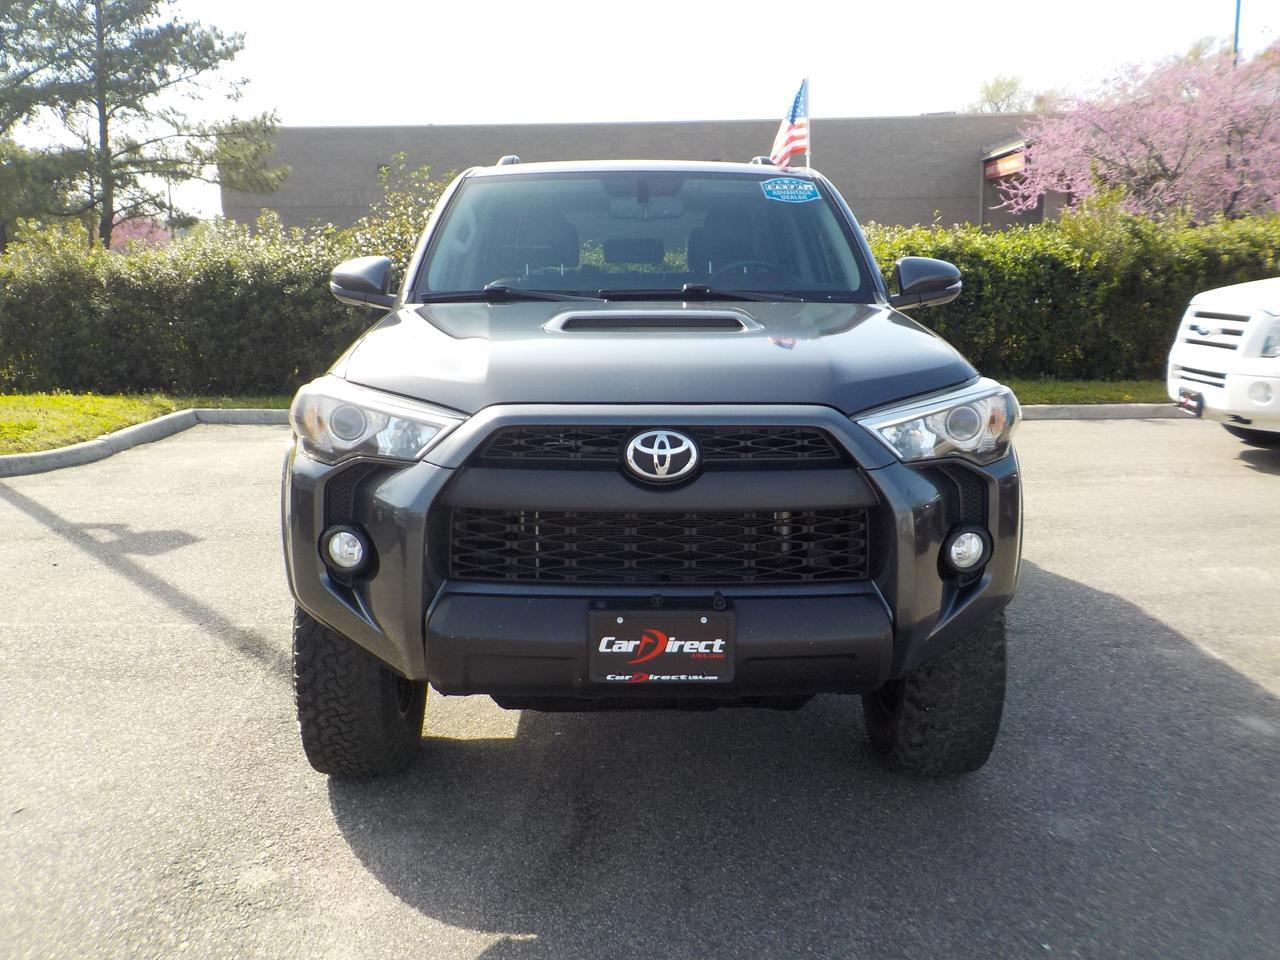 2014 TOYOTA 4RUNNER TRAIL 4X4, ONE OWNER, GRACENOTE SOUND SYSTEM, DVD ENTERTAINMENT, LEATHER HEATED SEATS, TOW PACKAGE! Virginia Beach VA